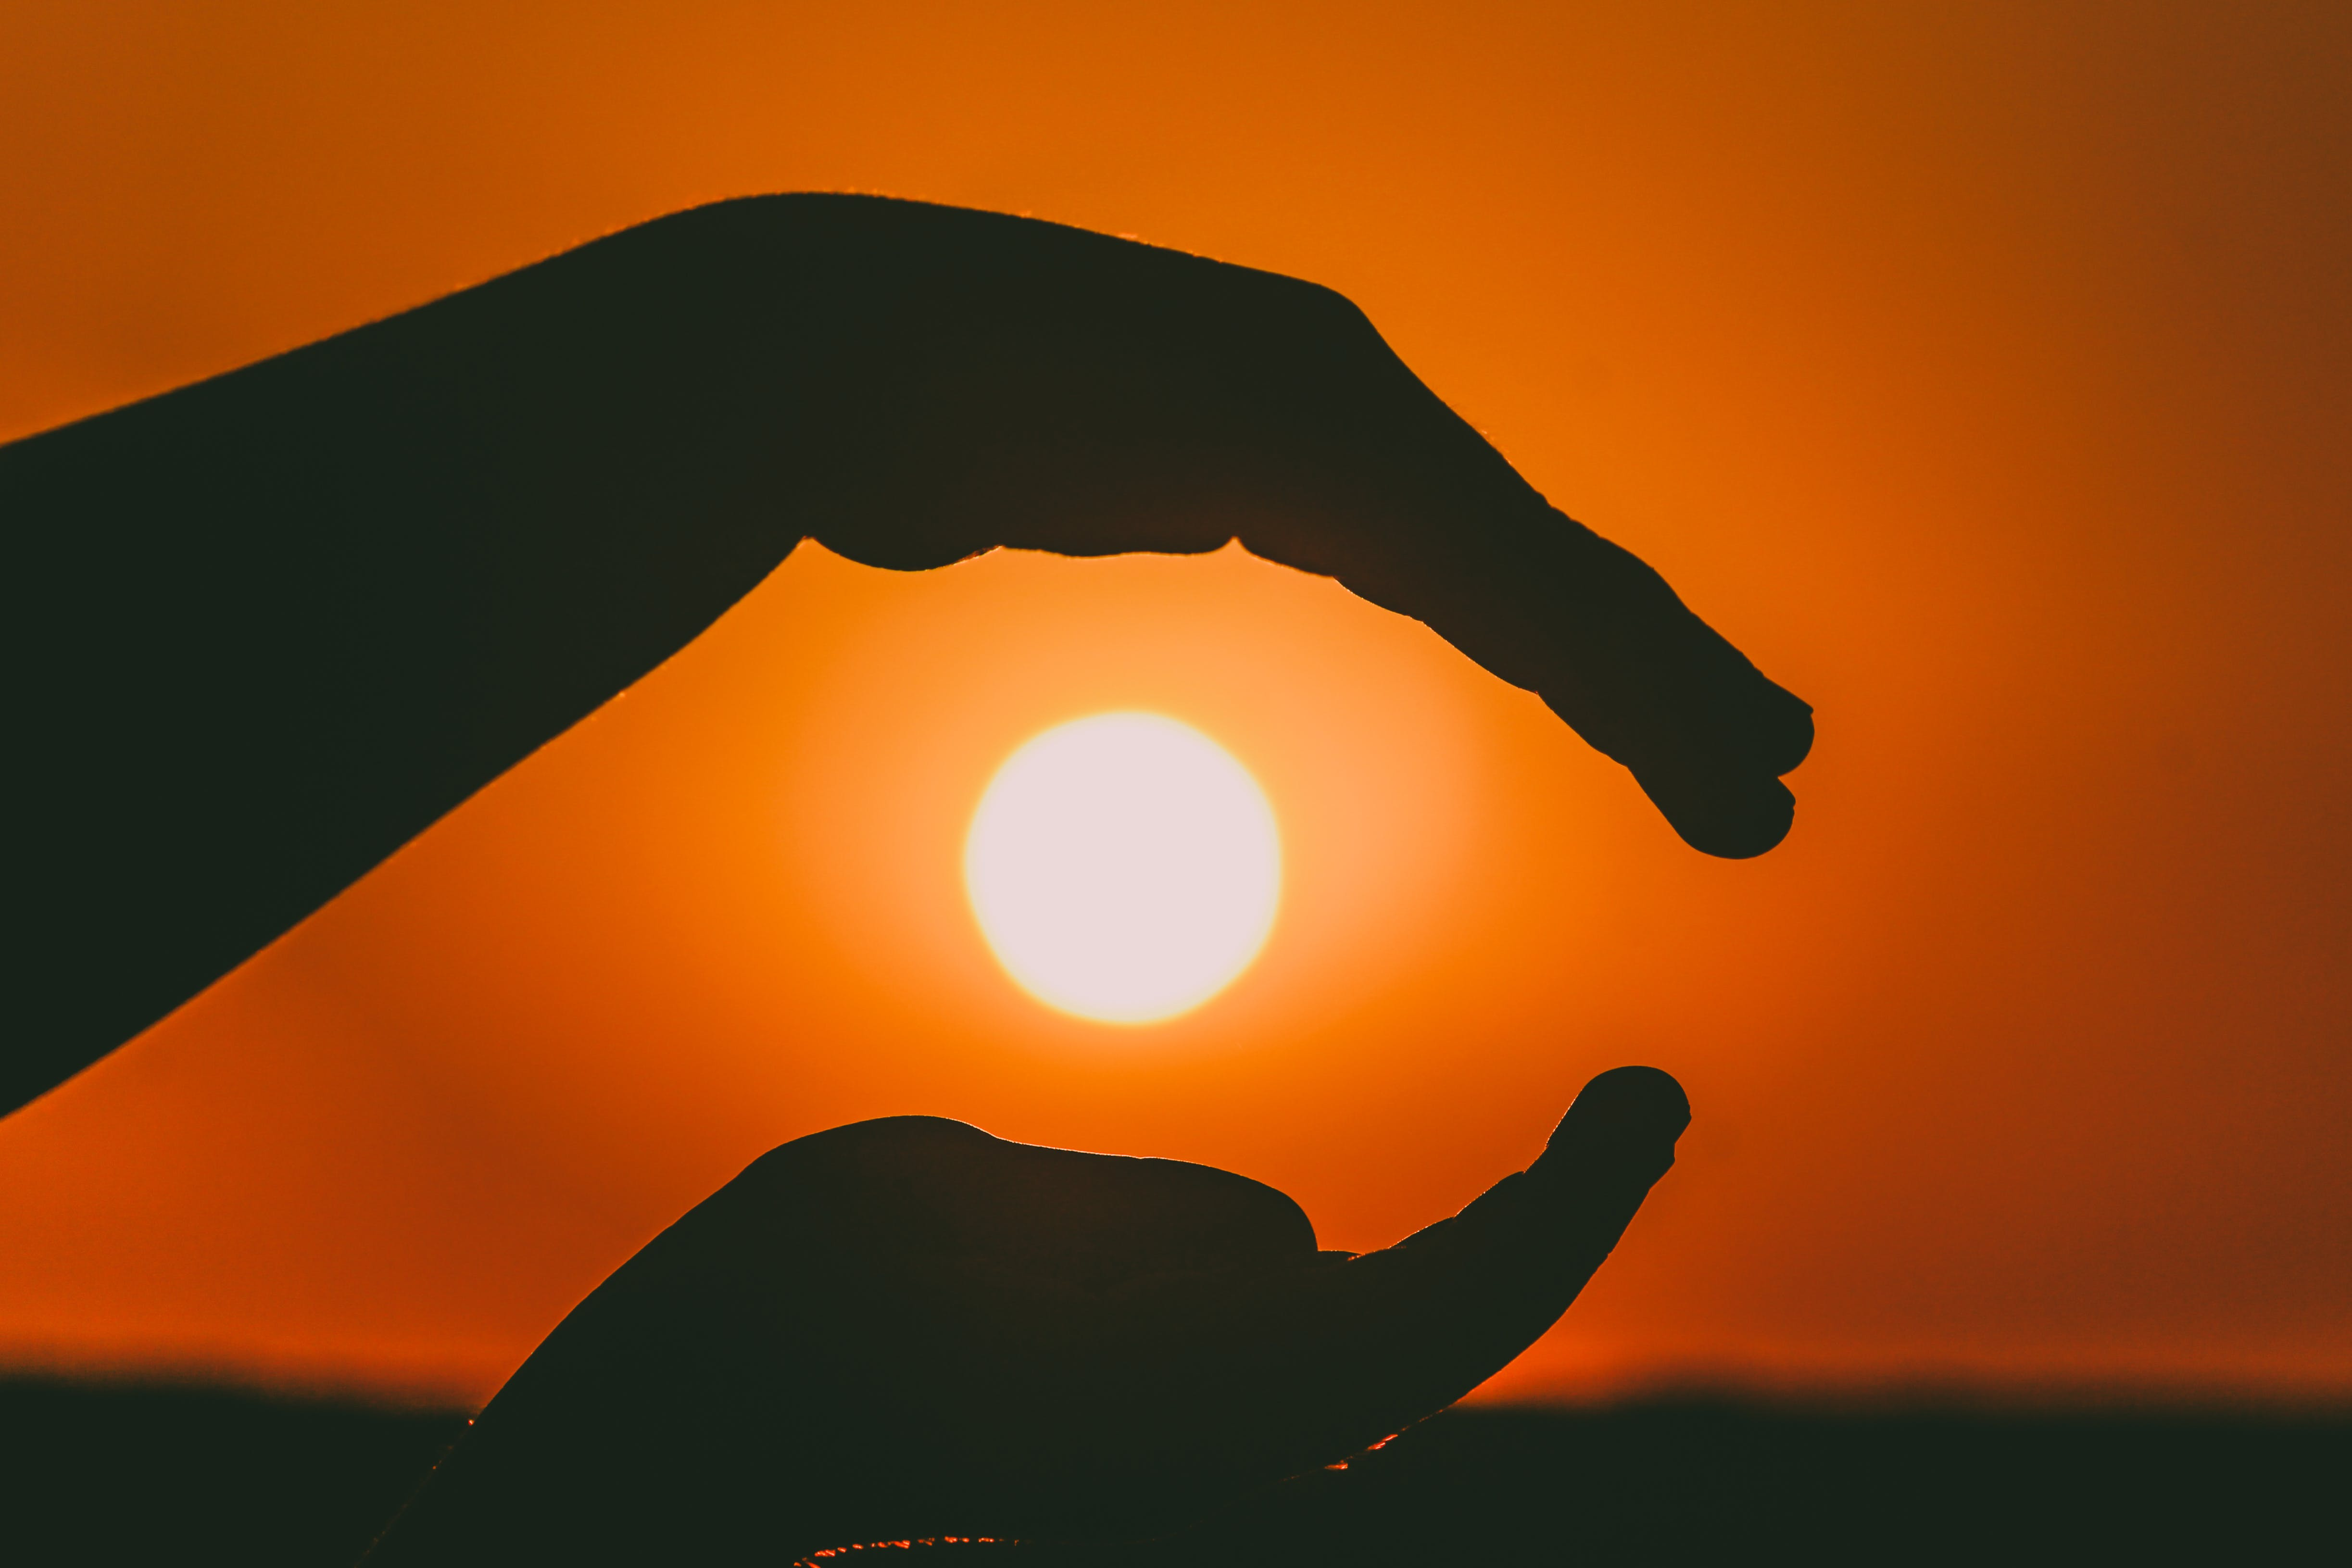 Silhouette of Person's Hands during Sunset